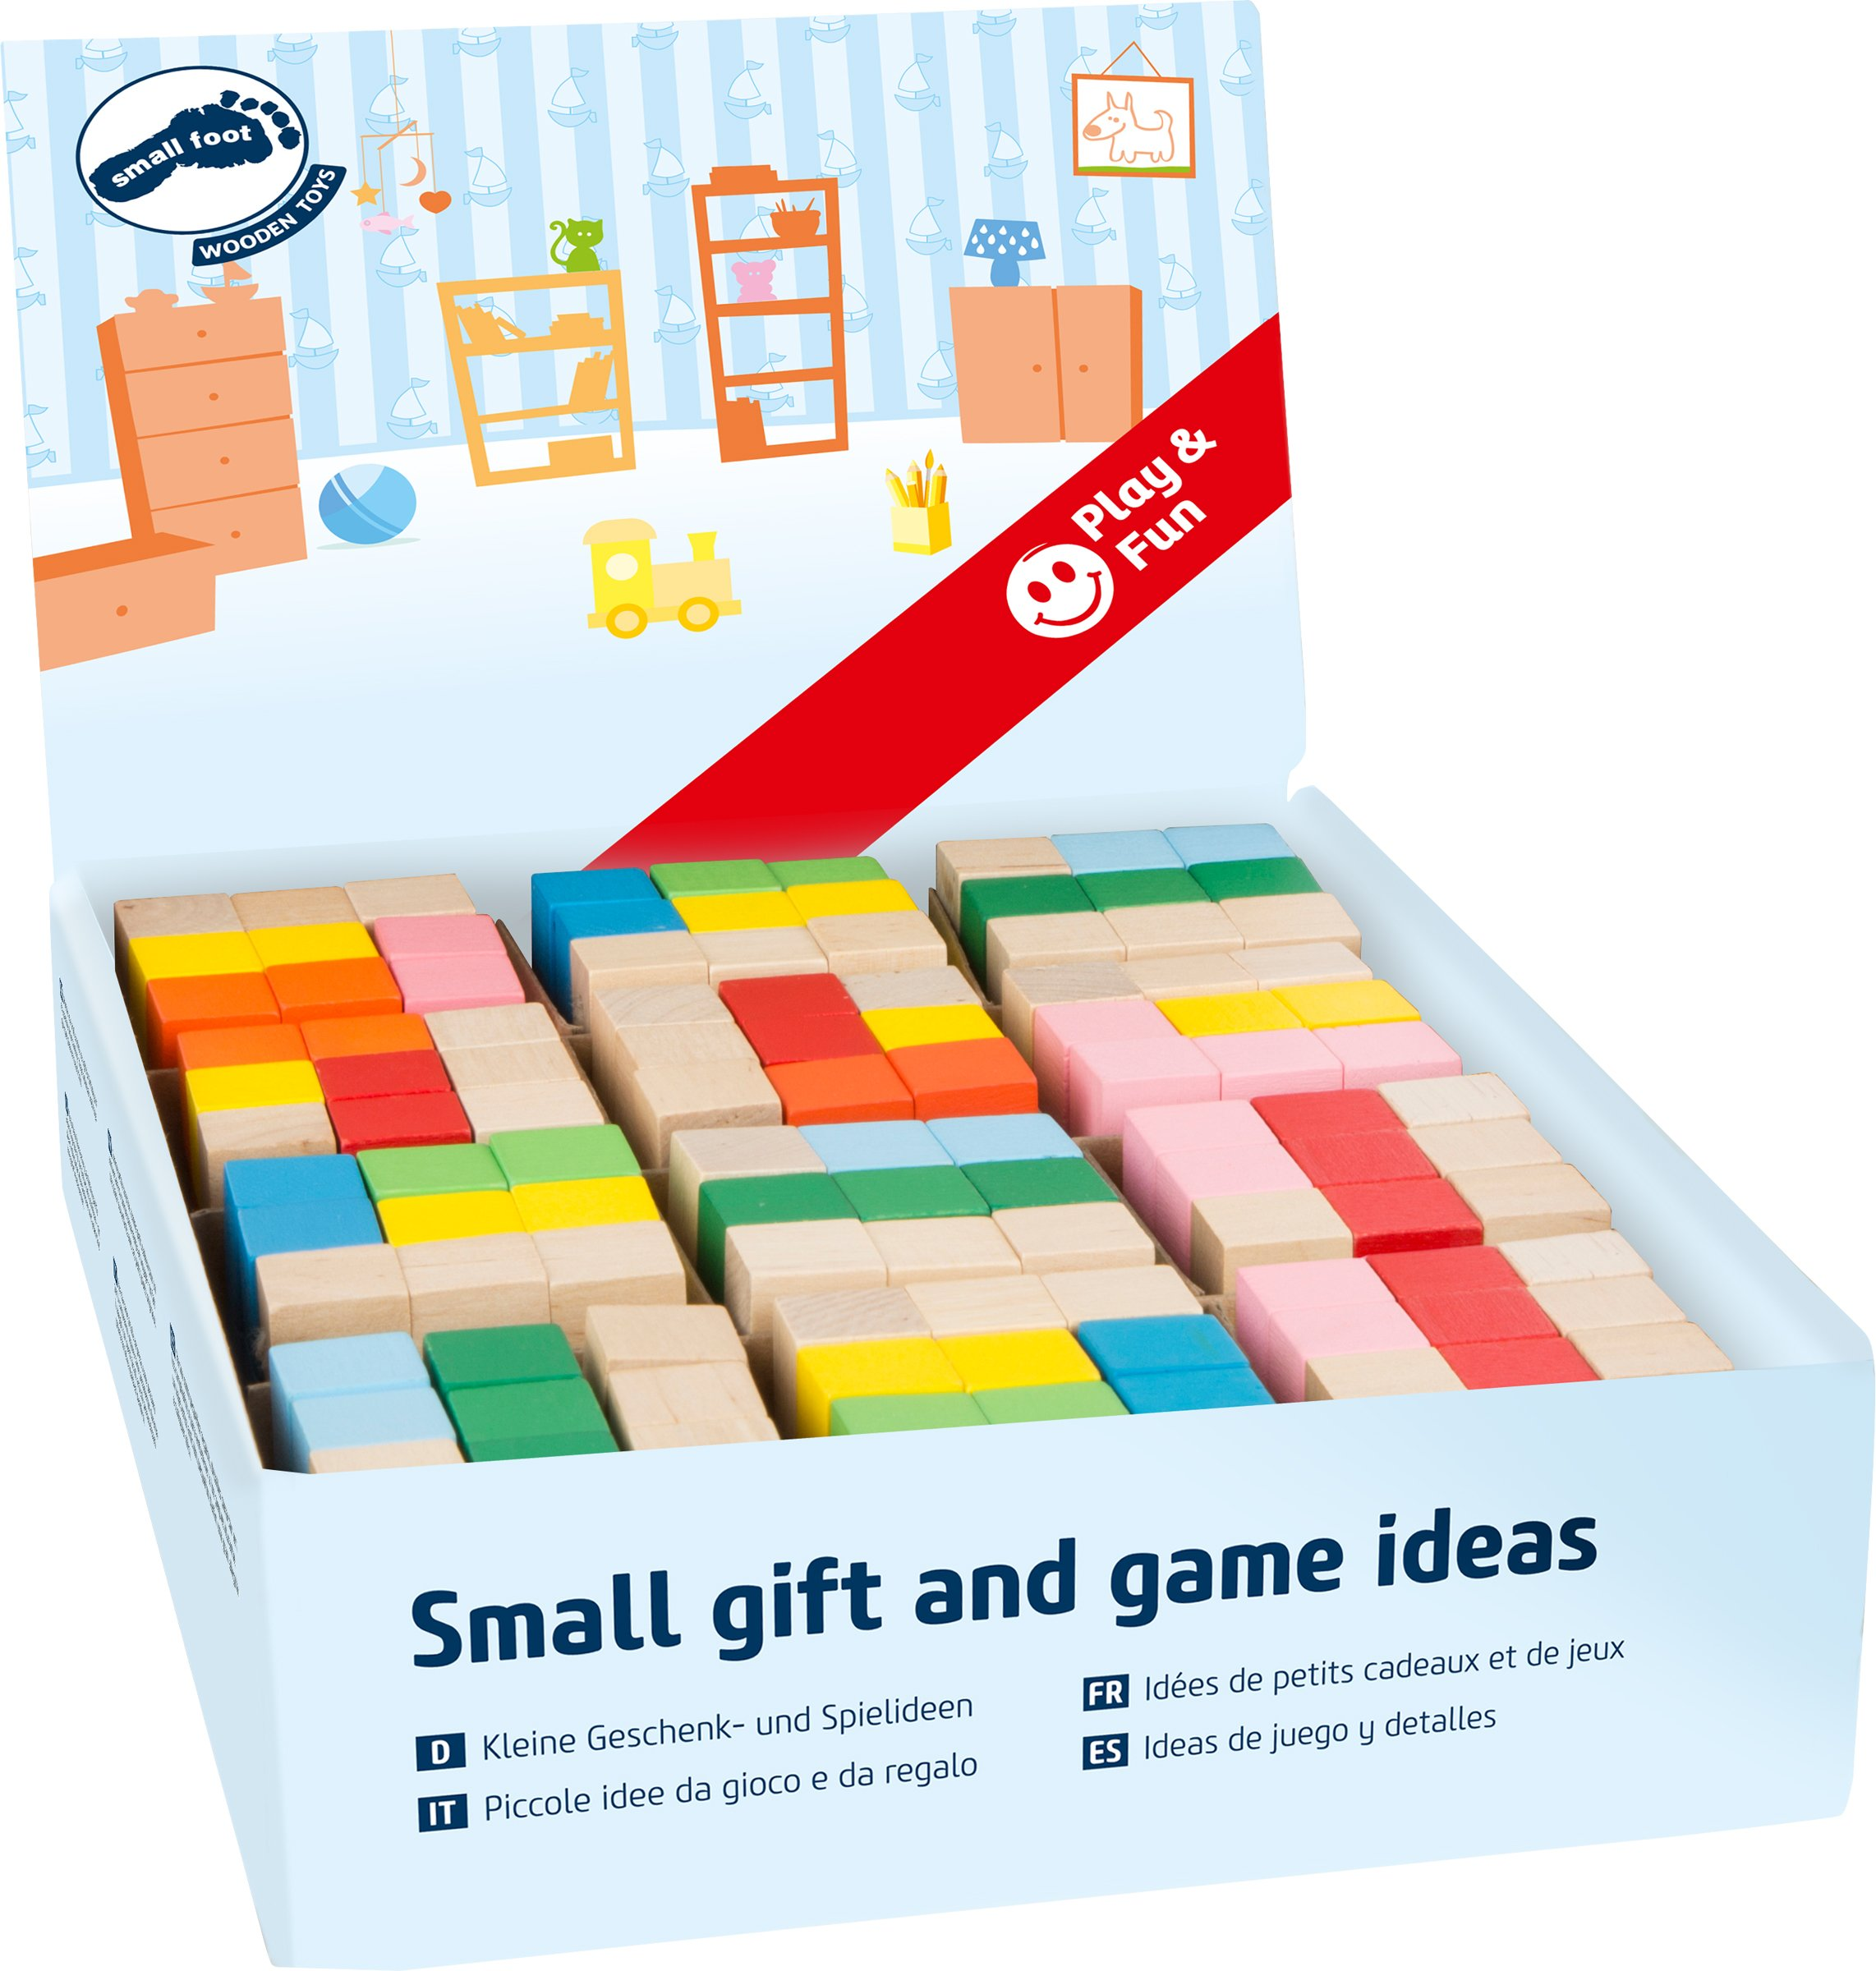 Small Foot 10687 Construction dice Made of Colourful, Connected Building Blocks, Trains The Spatial Thinking, The Motor Skill, Ideal Souvenir